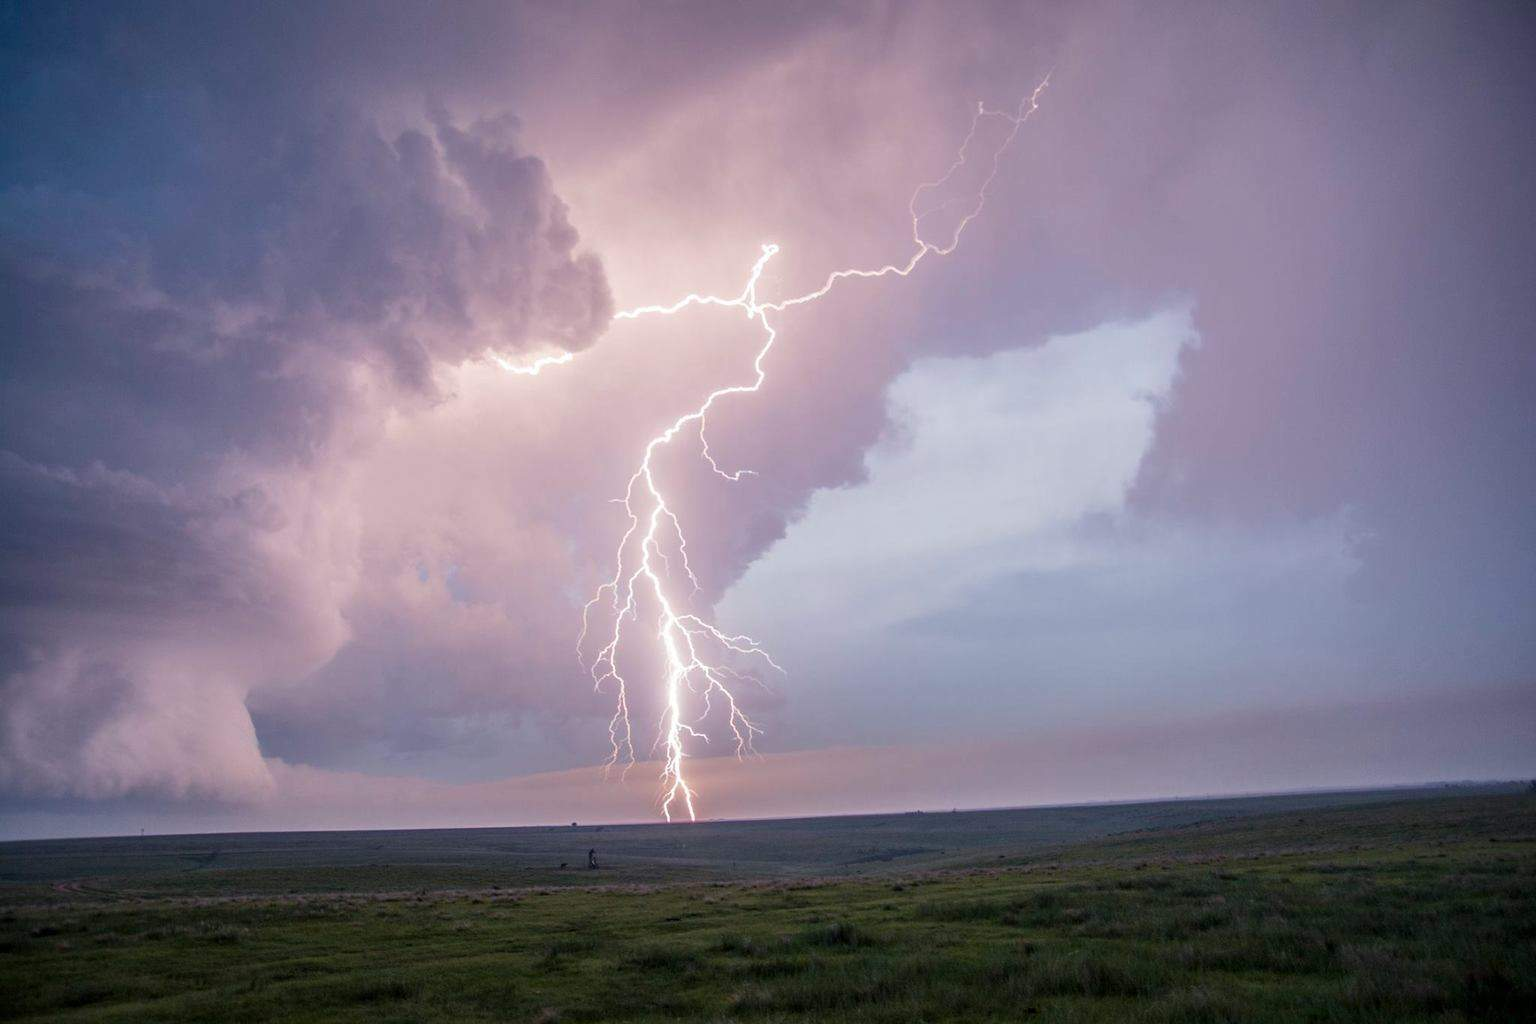 BAM KABOEM!!!! Lightning strike in front of me...; The picture was taken handheld without a tripod.... This was 1 of the cells i saw on June 4, 2015 near Atwood, Kansas